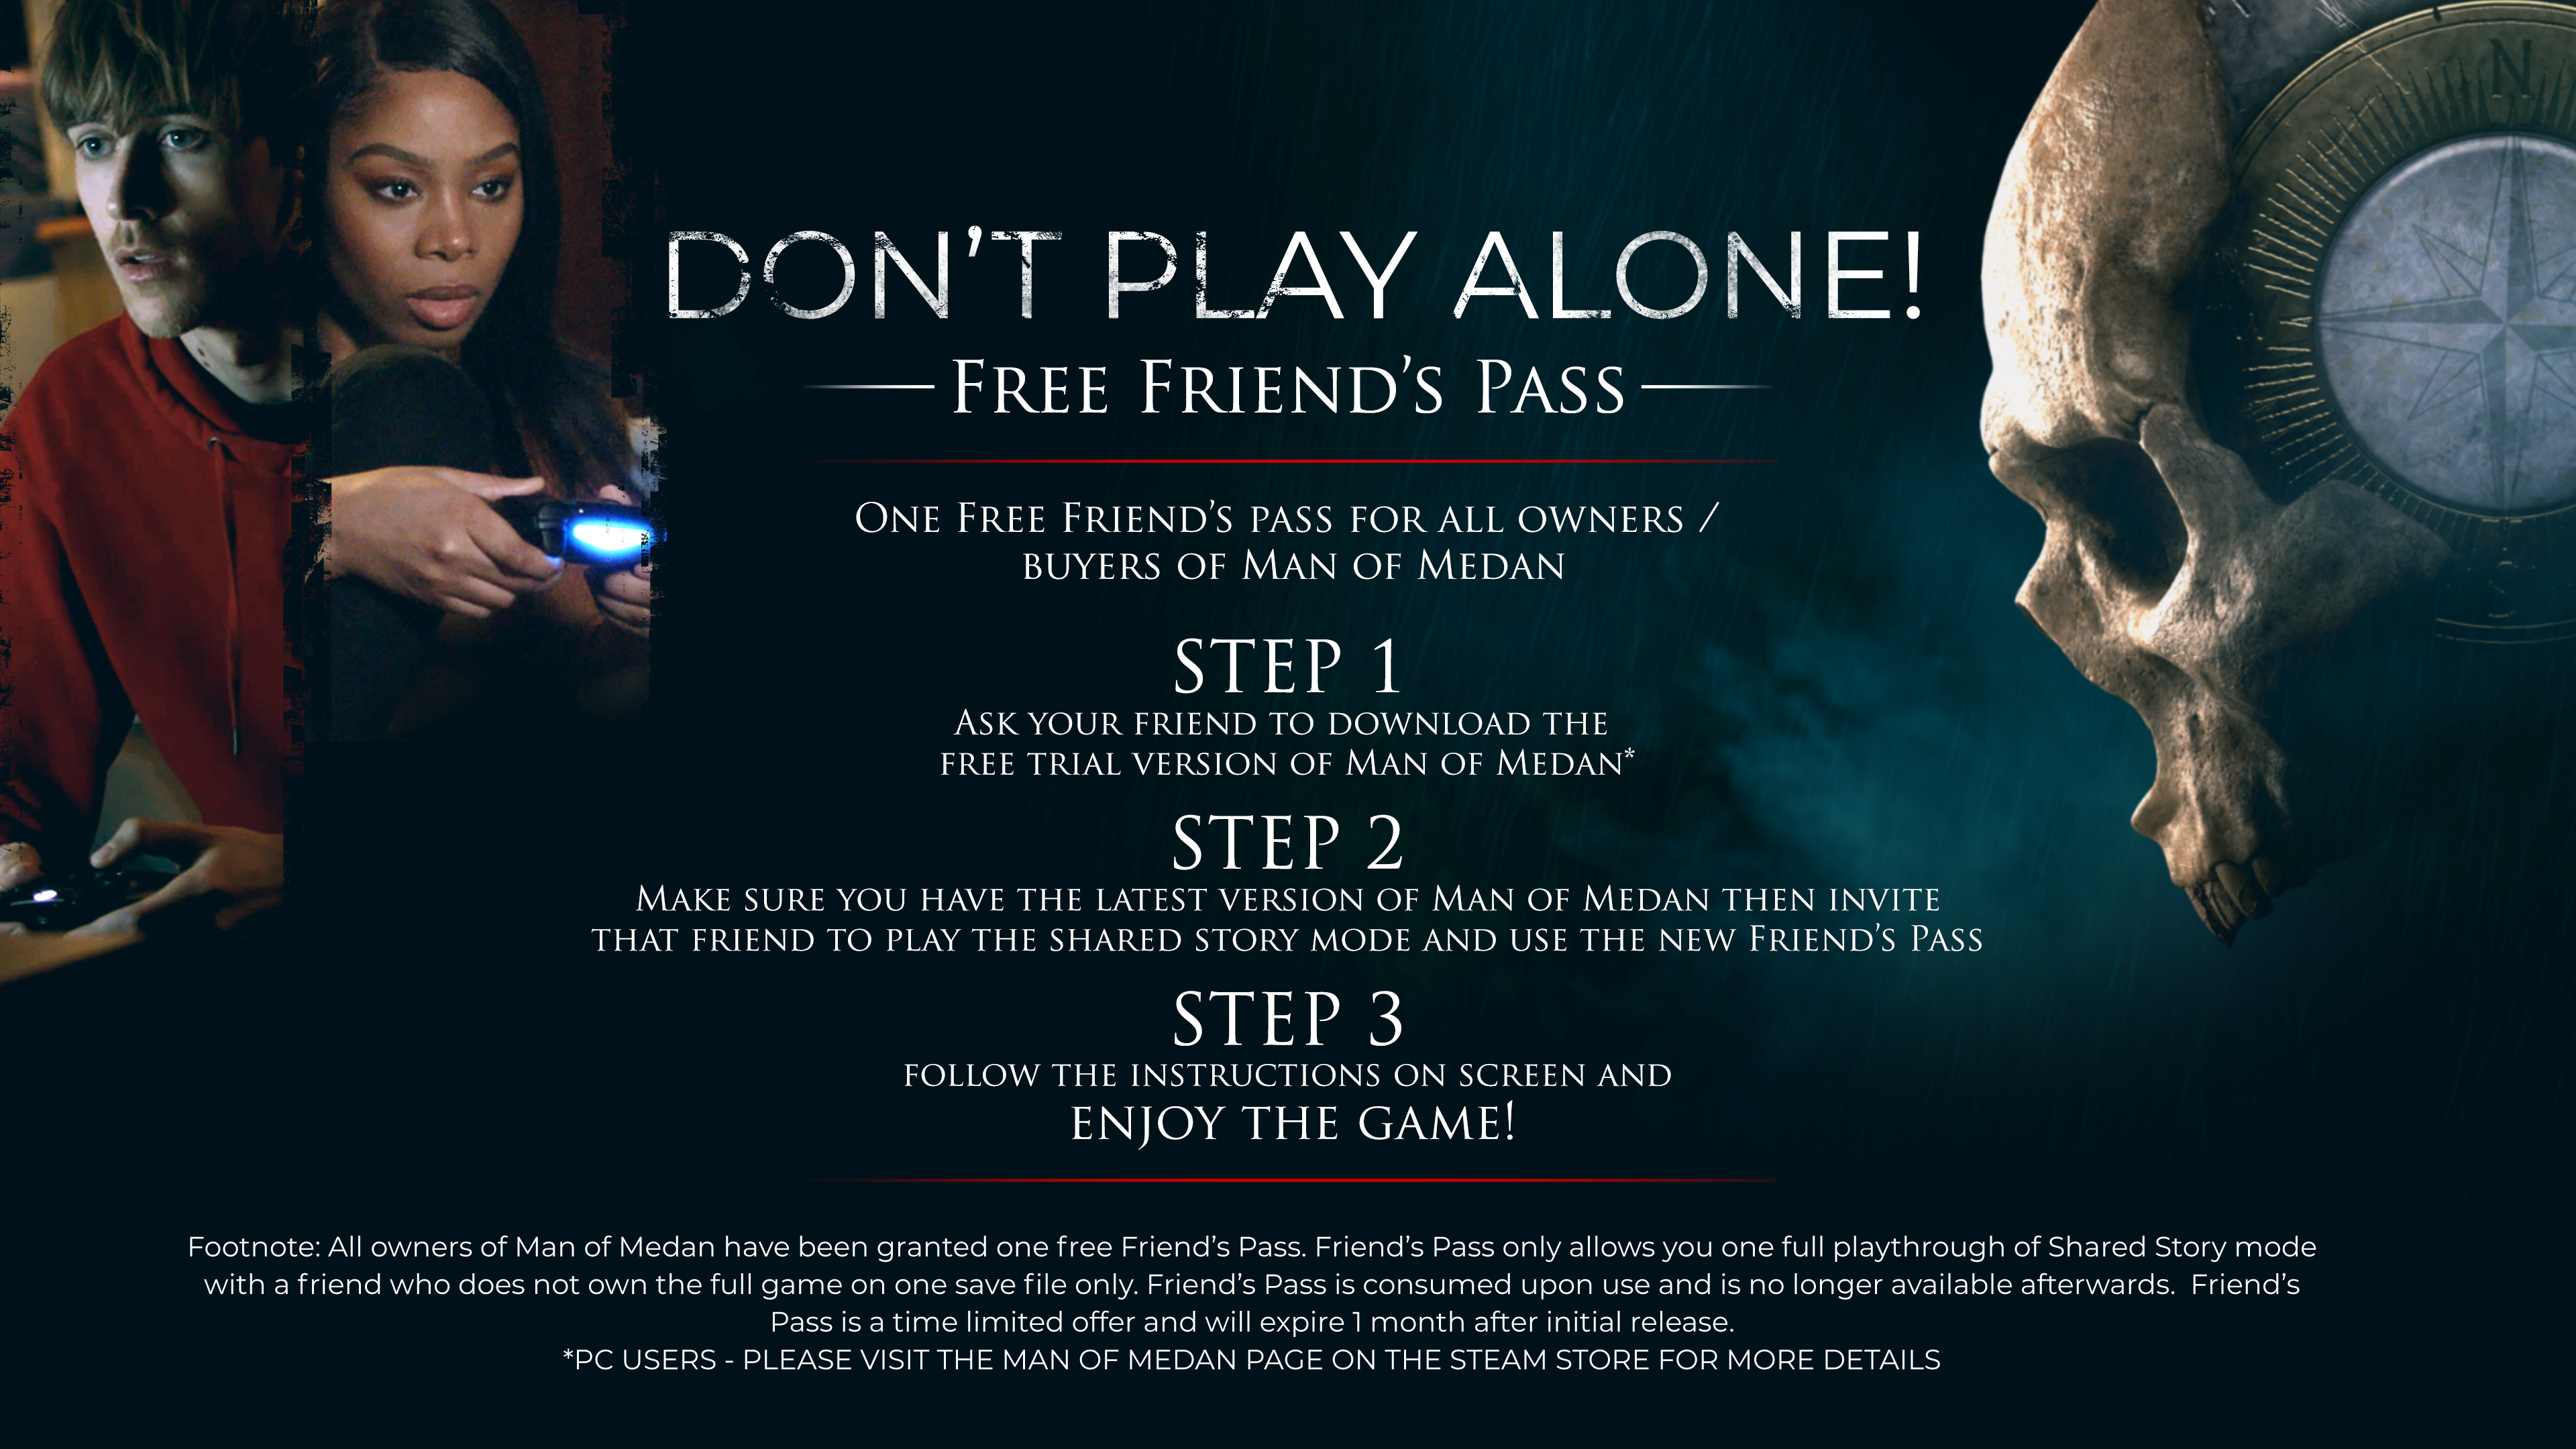 Bandai Namco Gives Man of Medan Owners a Free Friend's Pass to Celebrate Black Friday